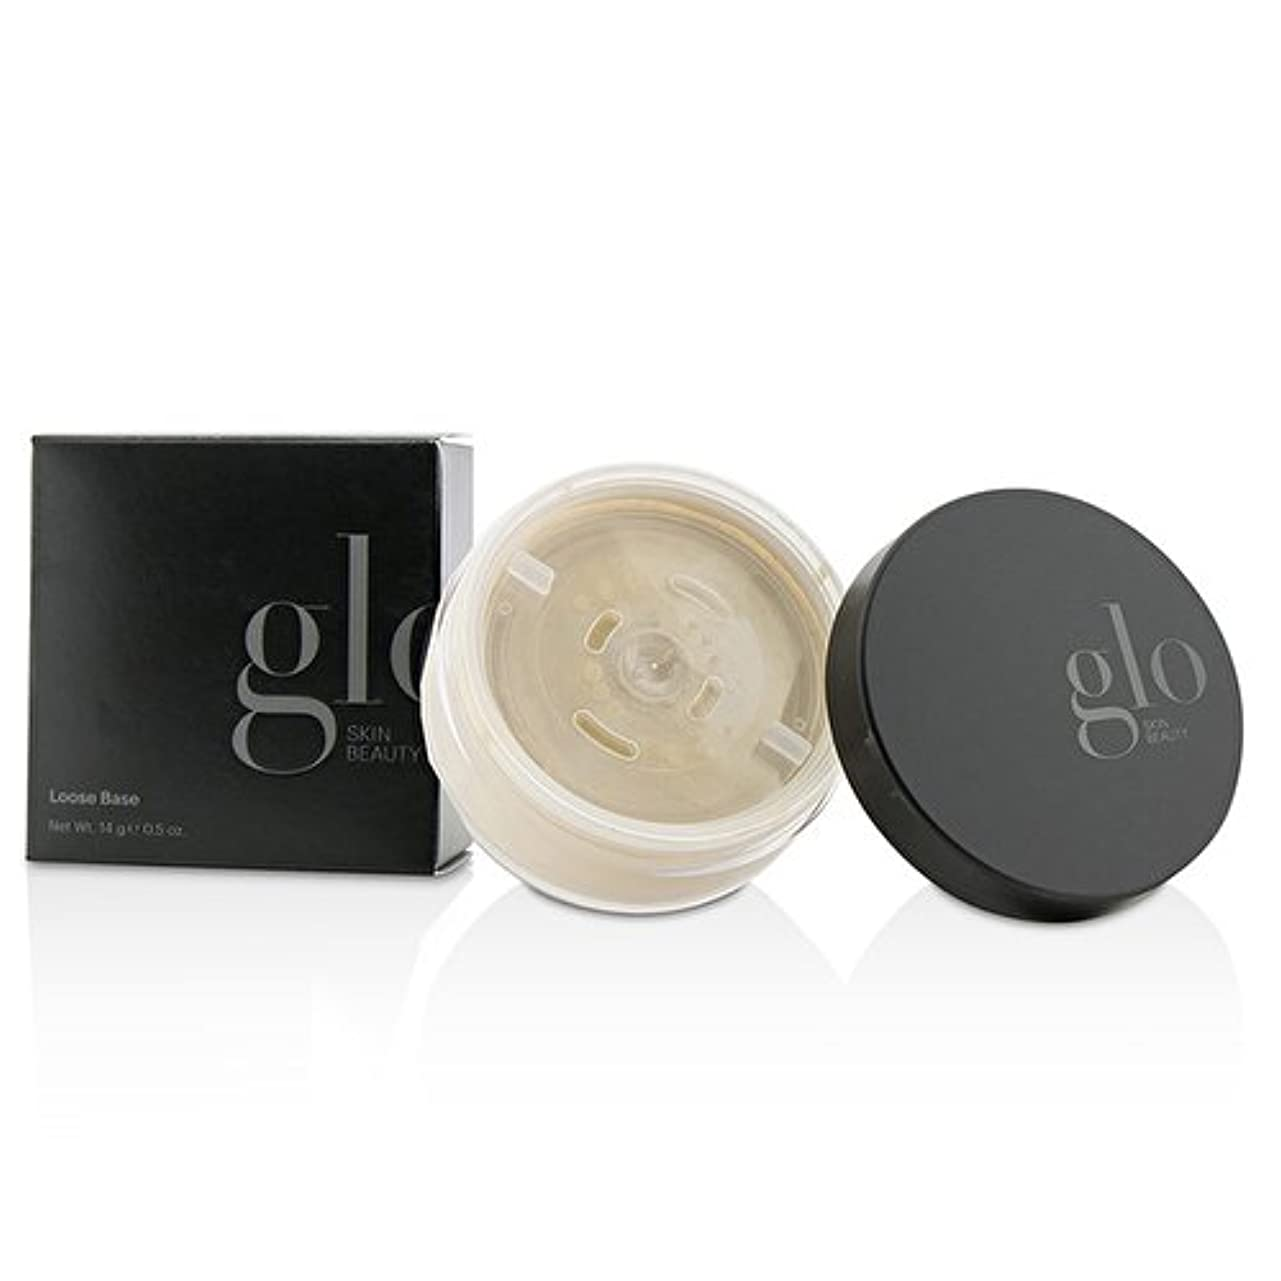 取り囲む嫌な絶縁するGlo Skin Beauty Loose Base (Mineral Foundation) - # Natural Fair 14g/0.5oz並行輸入品